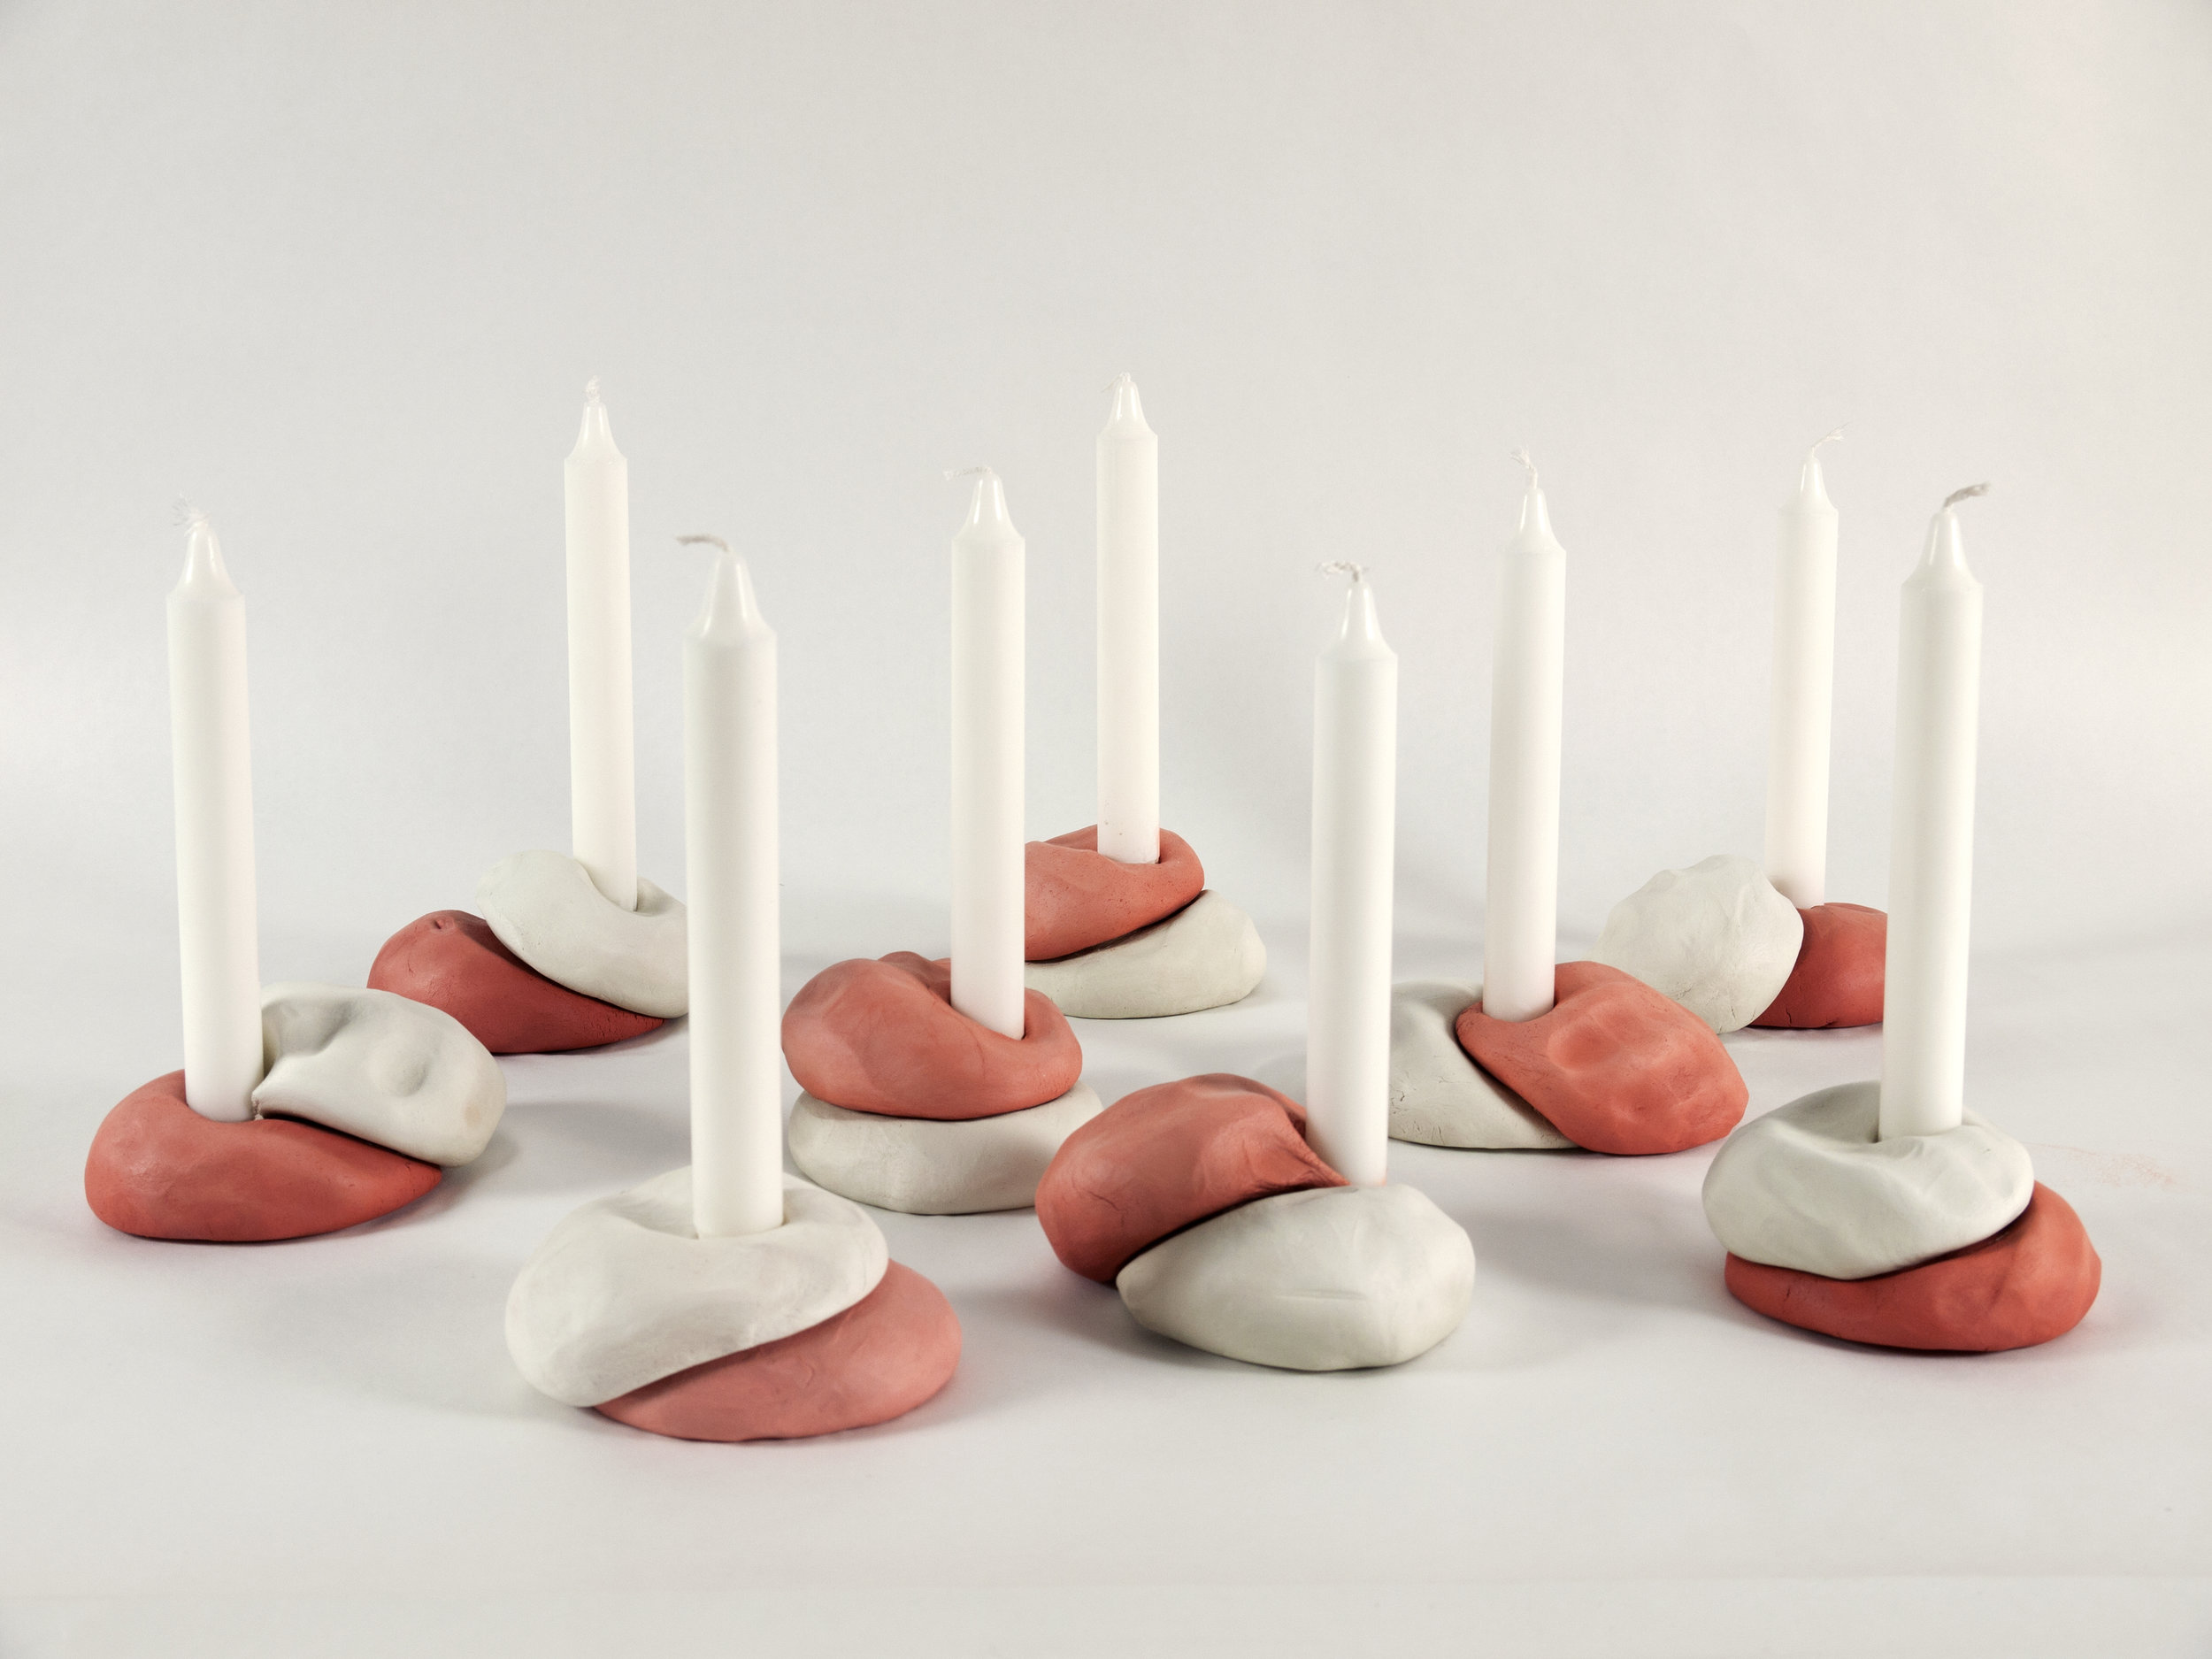 Jenny Nordberg, candlesticks made in 3 to 5 seconds.